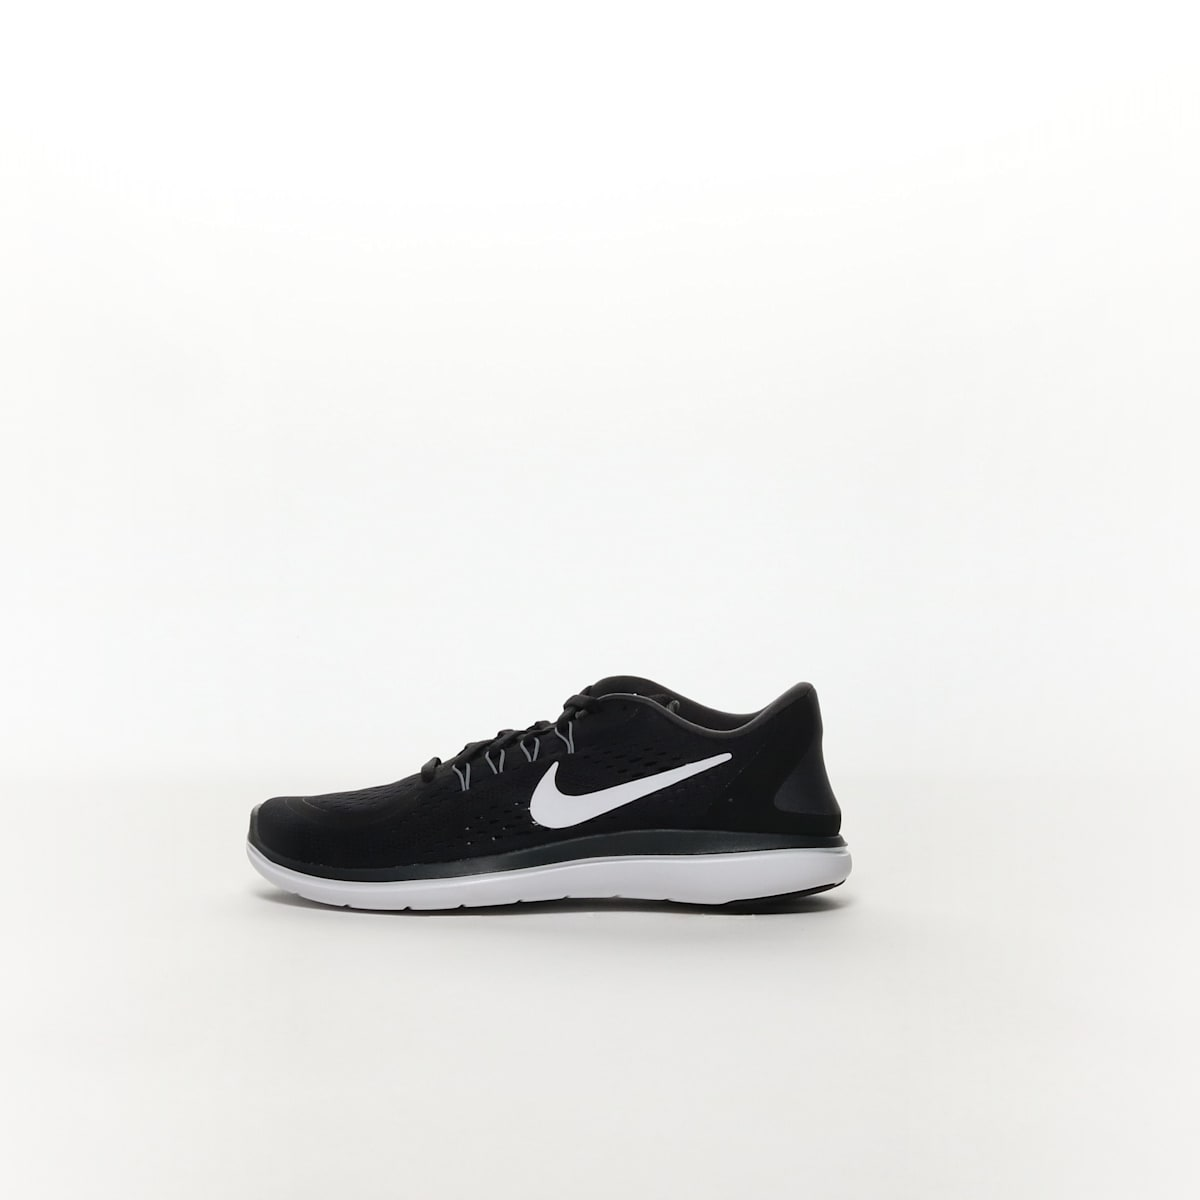 2ce46b38a8357 Men s Nike Flex 2017 RN Running Shoe - BLACK WHITE-ANTHRACITE-COOL ...